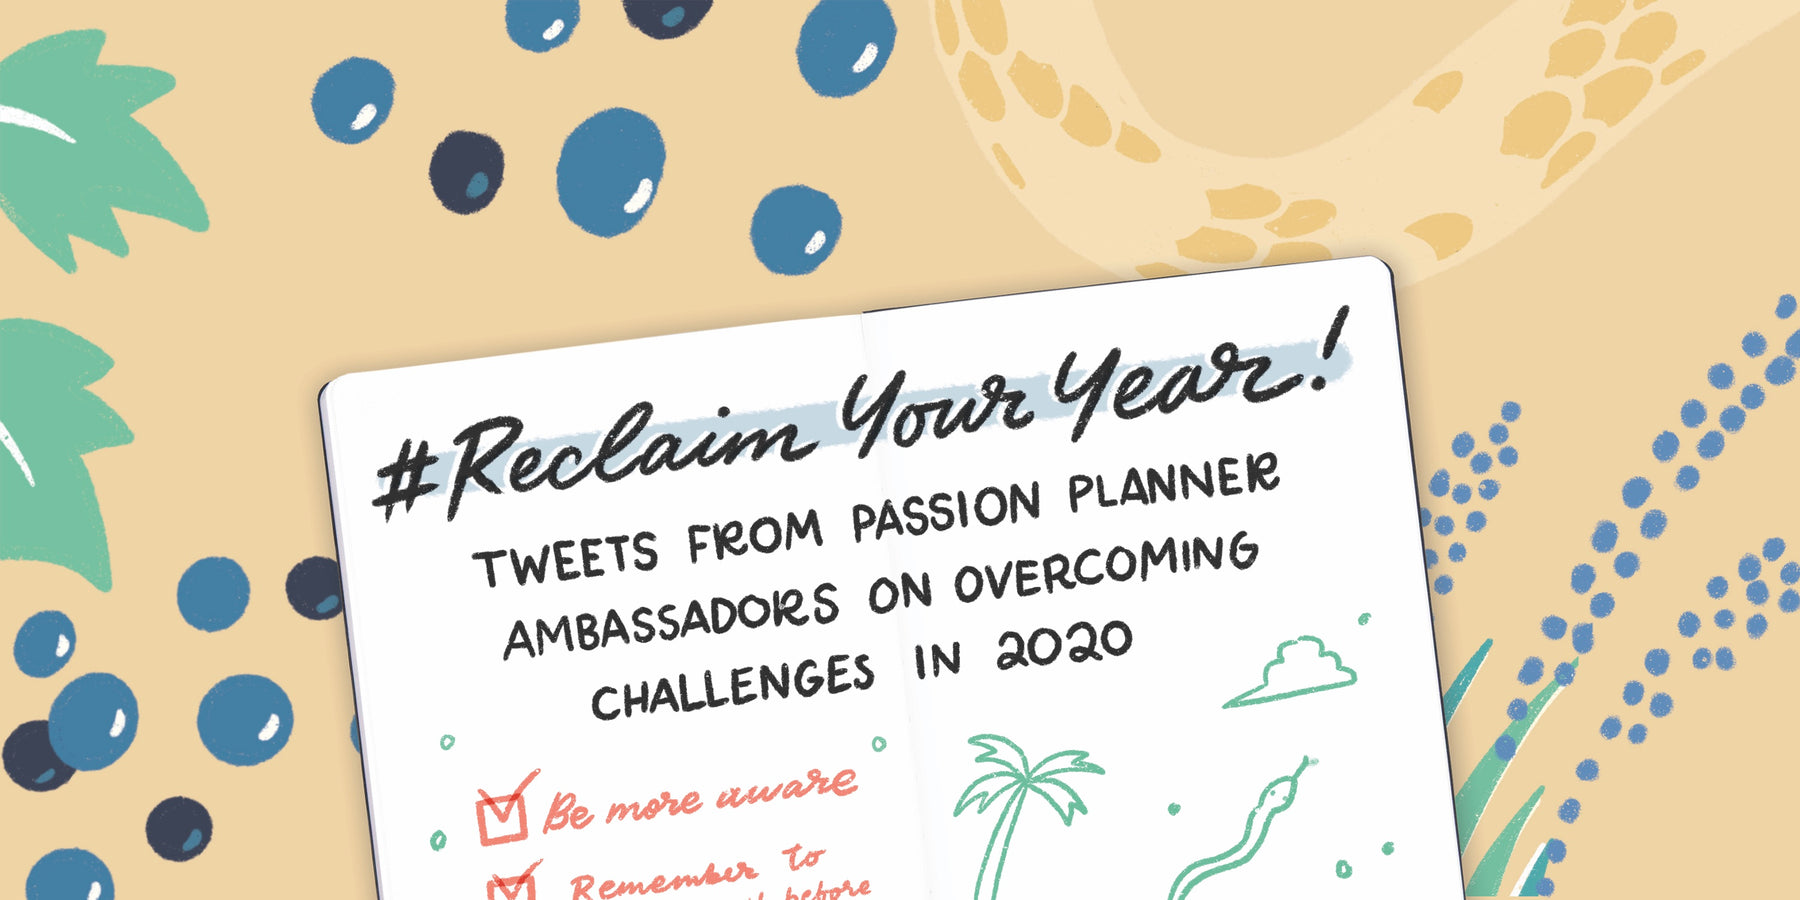 #ReclaimYourYear: 78 Inspiring Tweets from Passion Planner Ambassadors on Overcoming Challenges in 2020